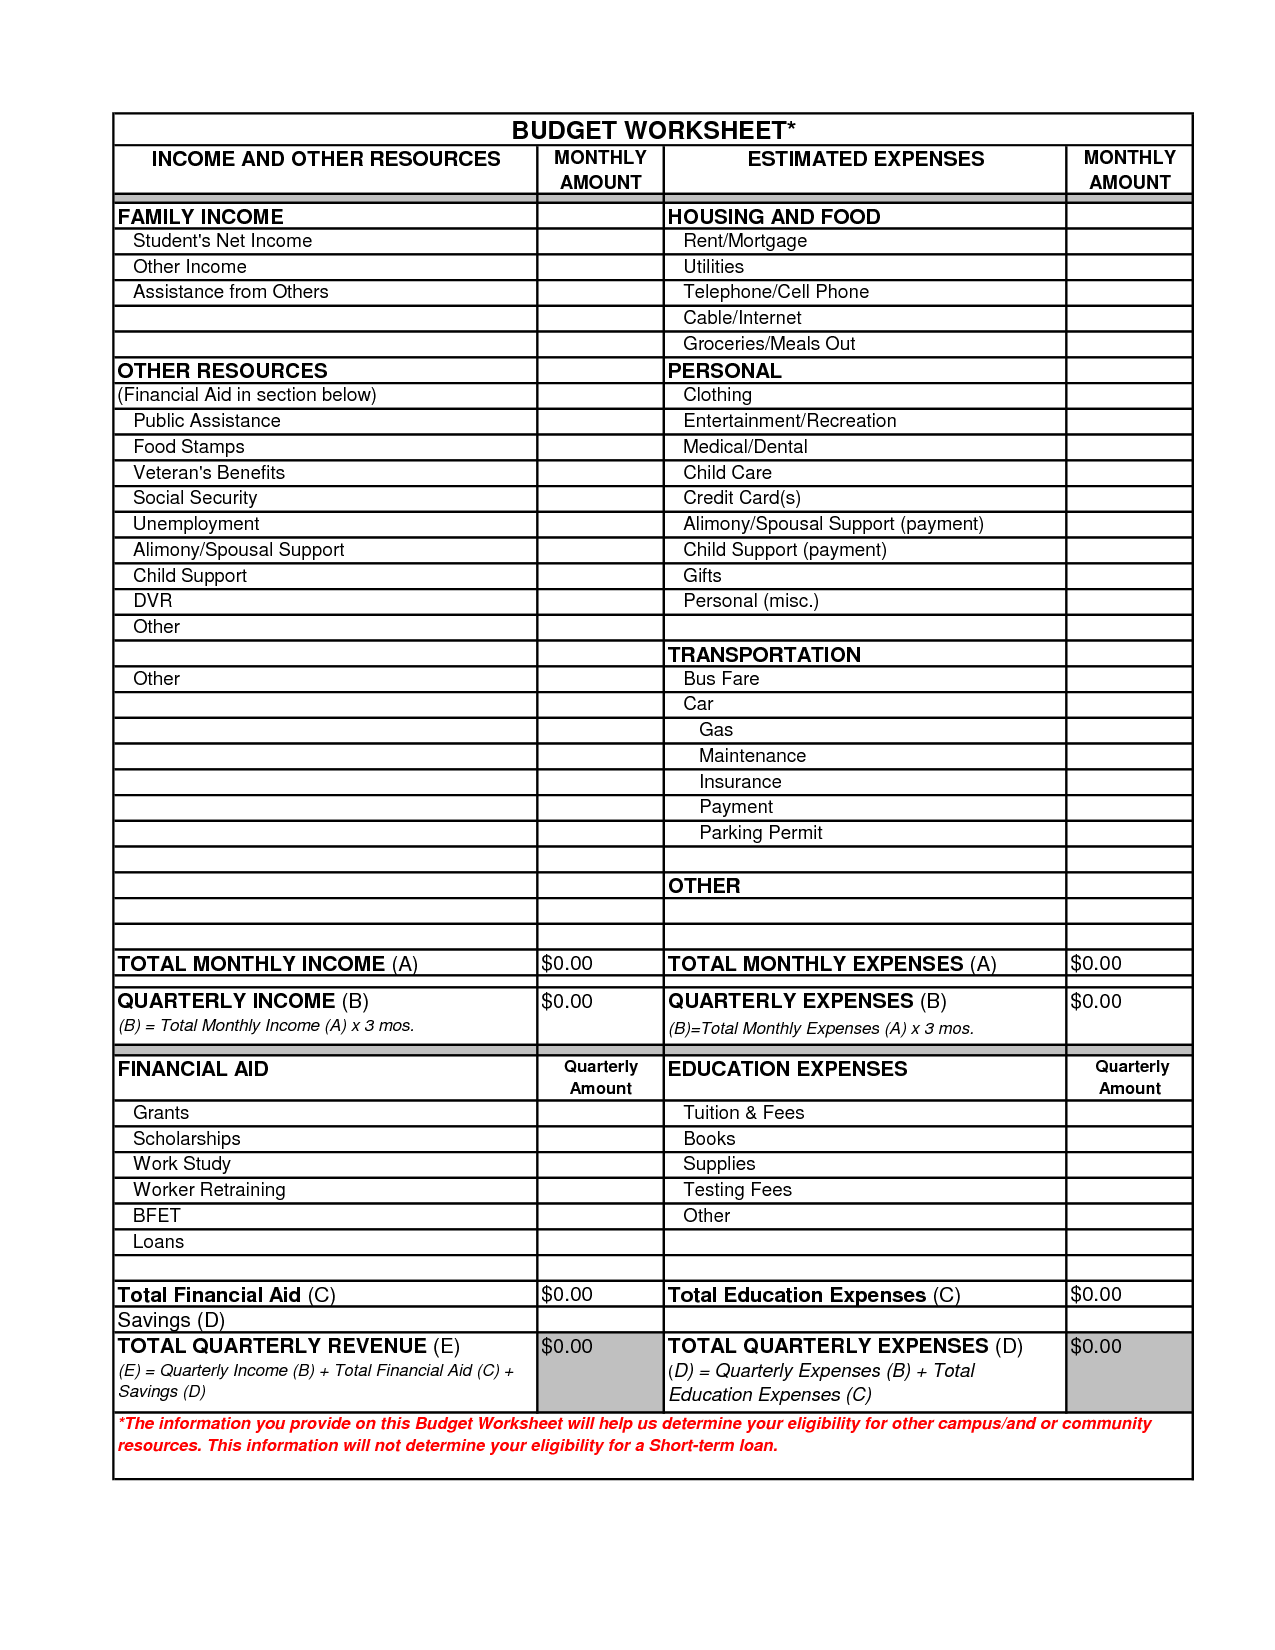 18 Best Images Of Blank Household Budget Worksheet